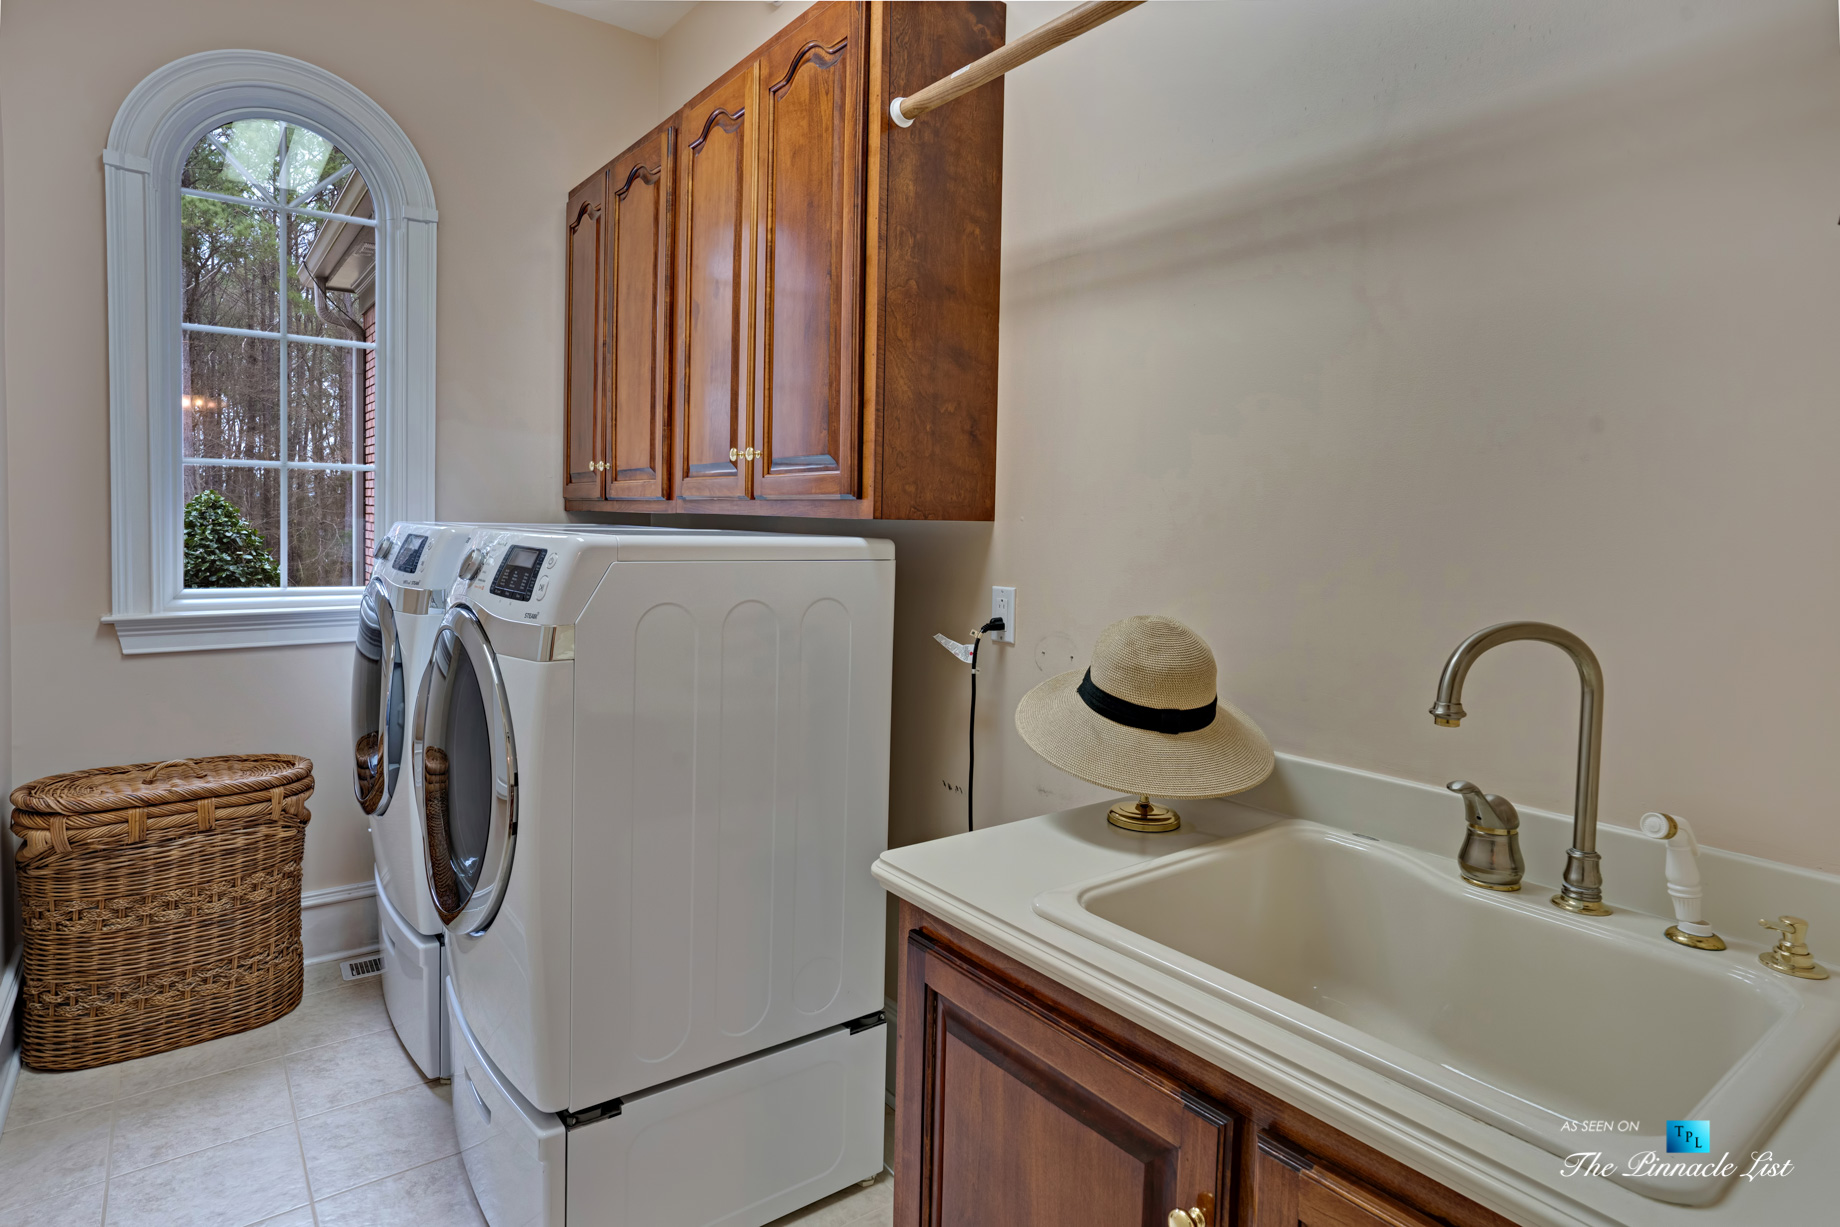 2219 Costley Mill Rd NE, Conyers, GA, USA - Laundry Room - Luxury Real Estate - Equestrian Country Home